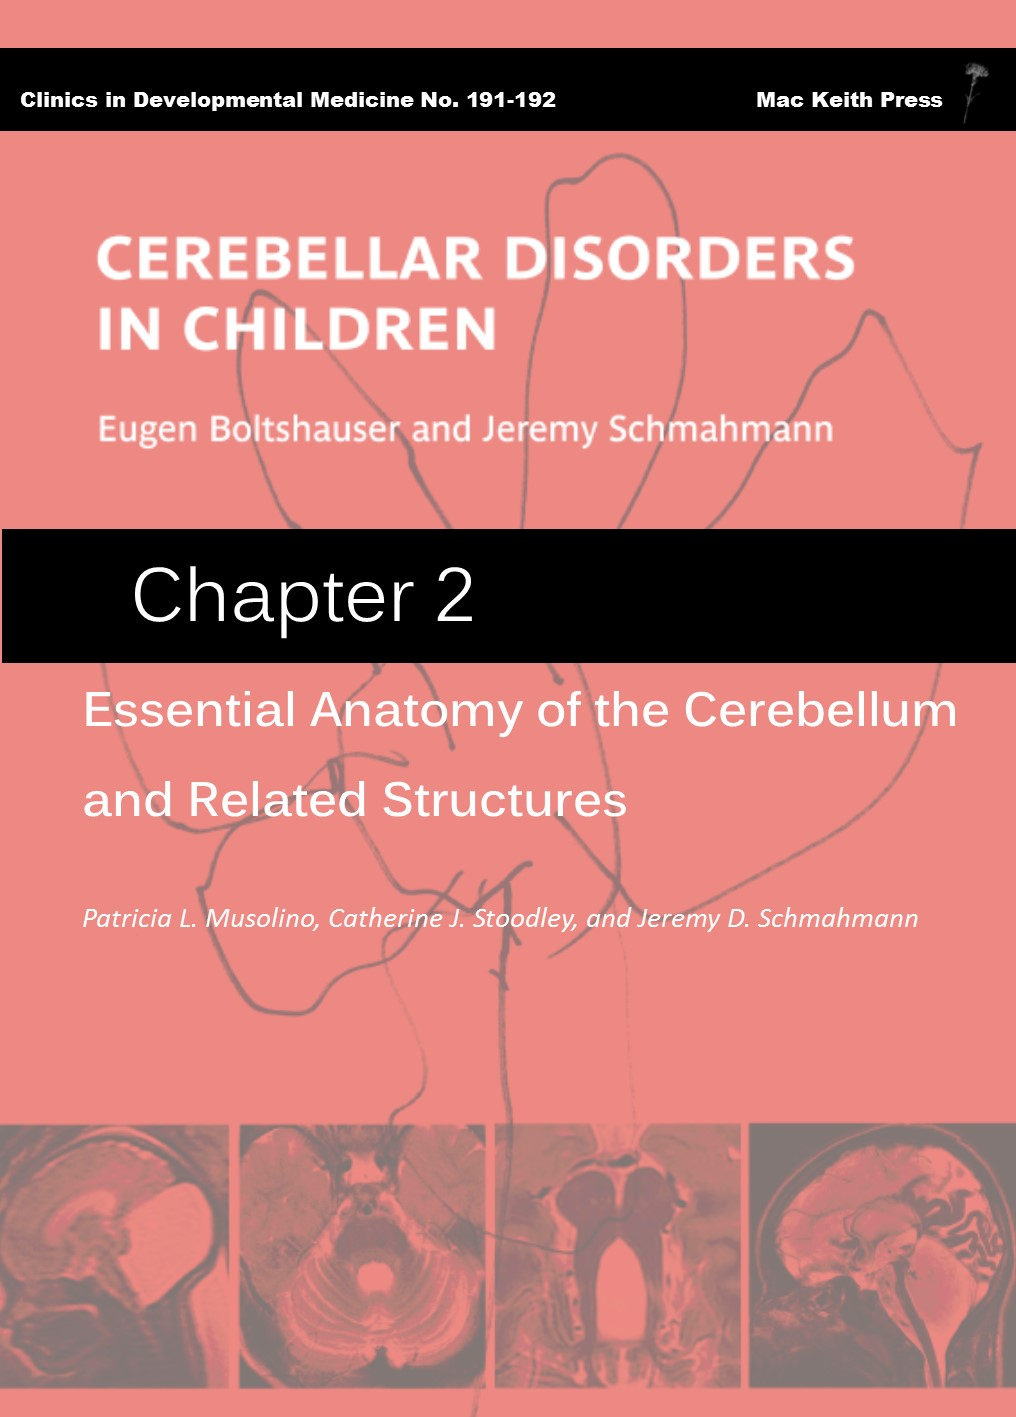 Essential Anatomy Of The Cerebellum And Related Structures